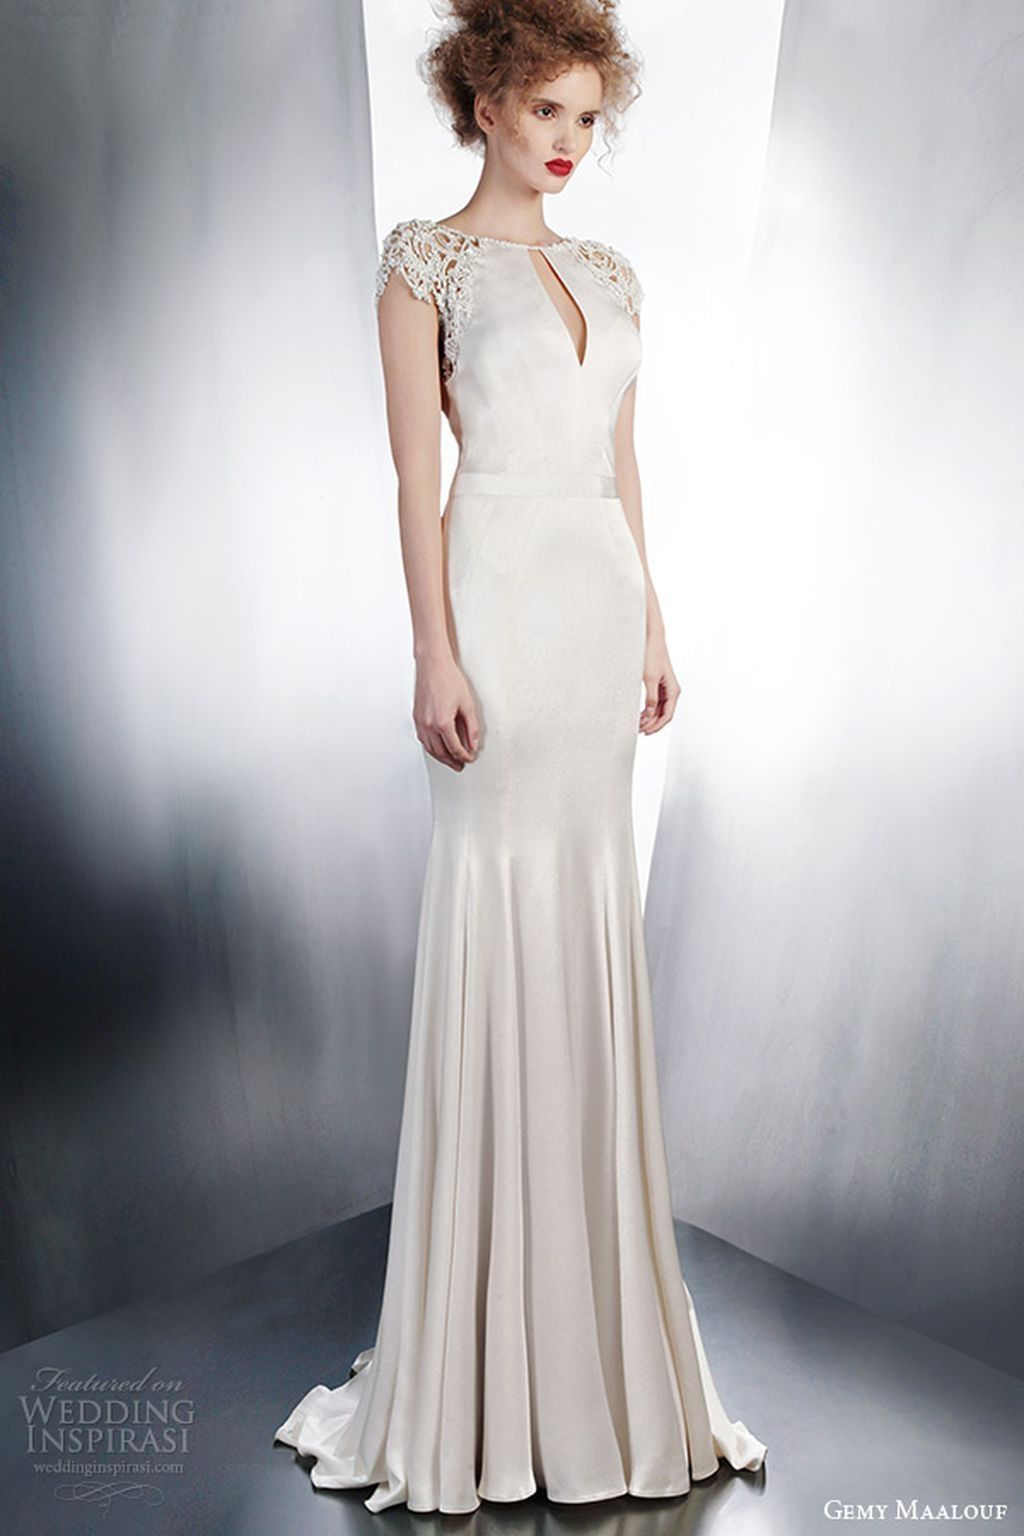 83 Simple But Non Traditional Wedding Dress Ideas Http Lovellywedding 2017 09 16